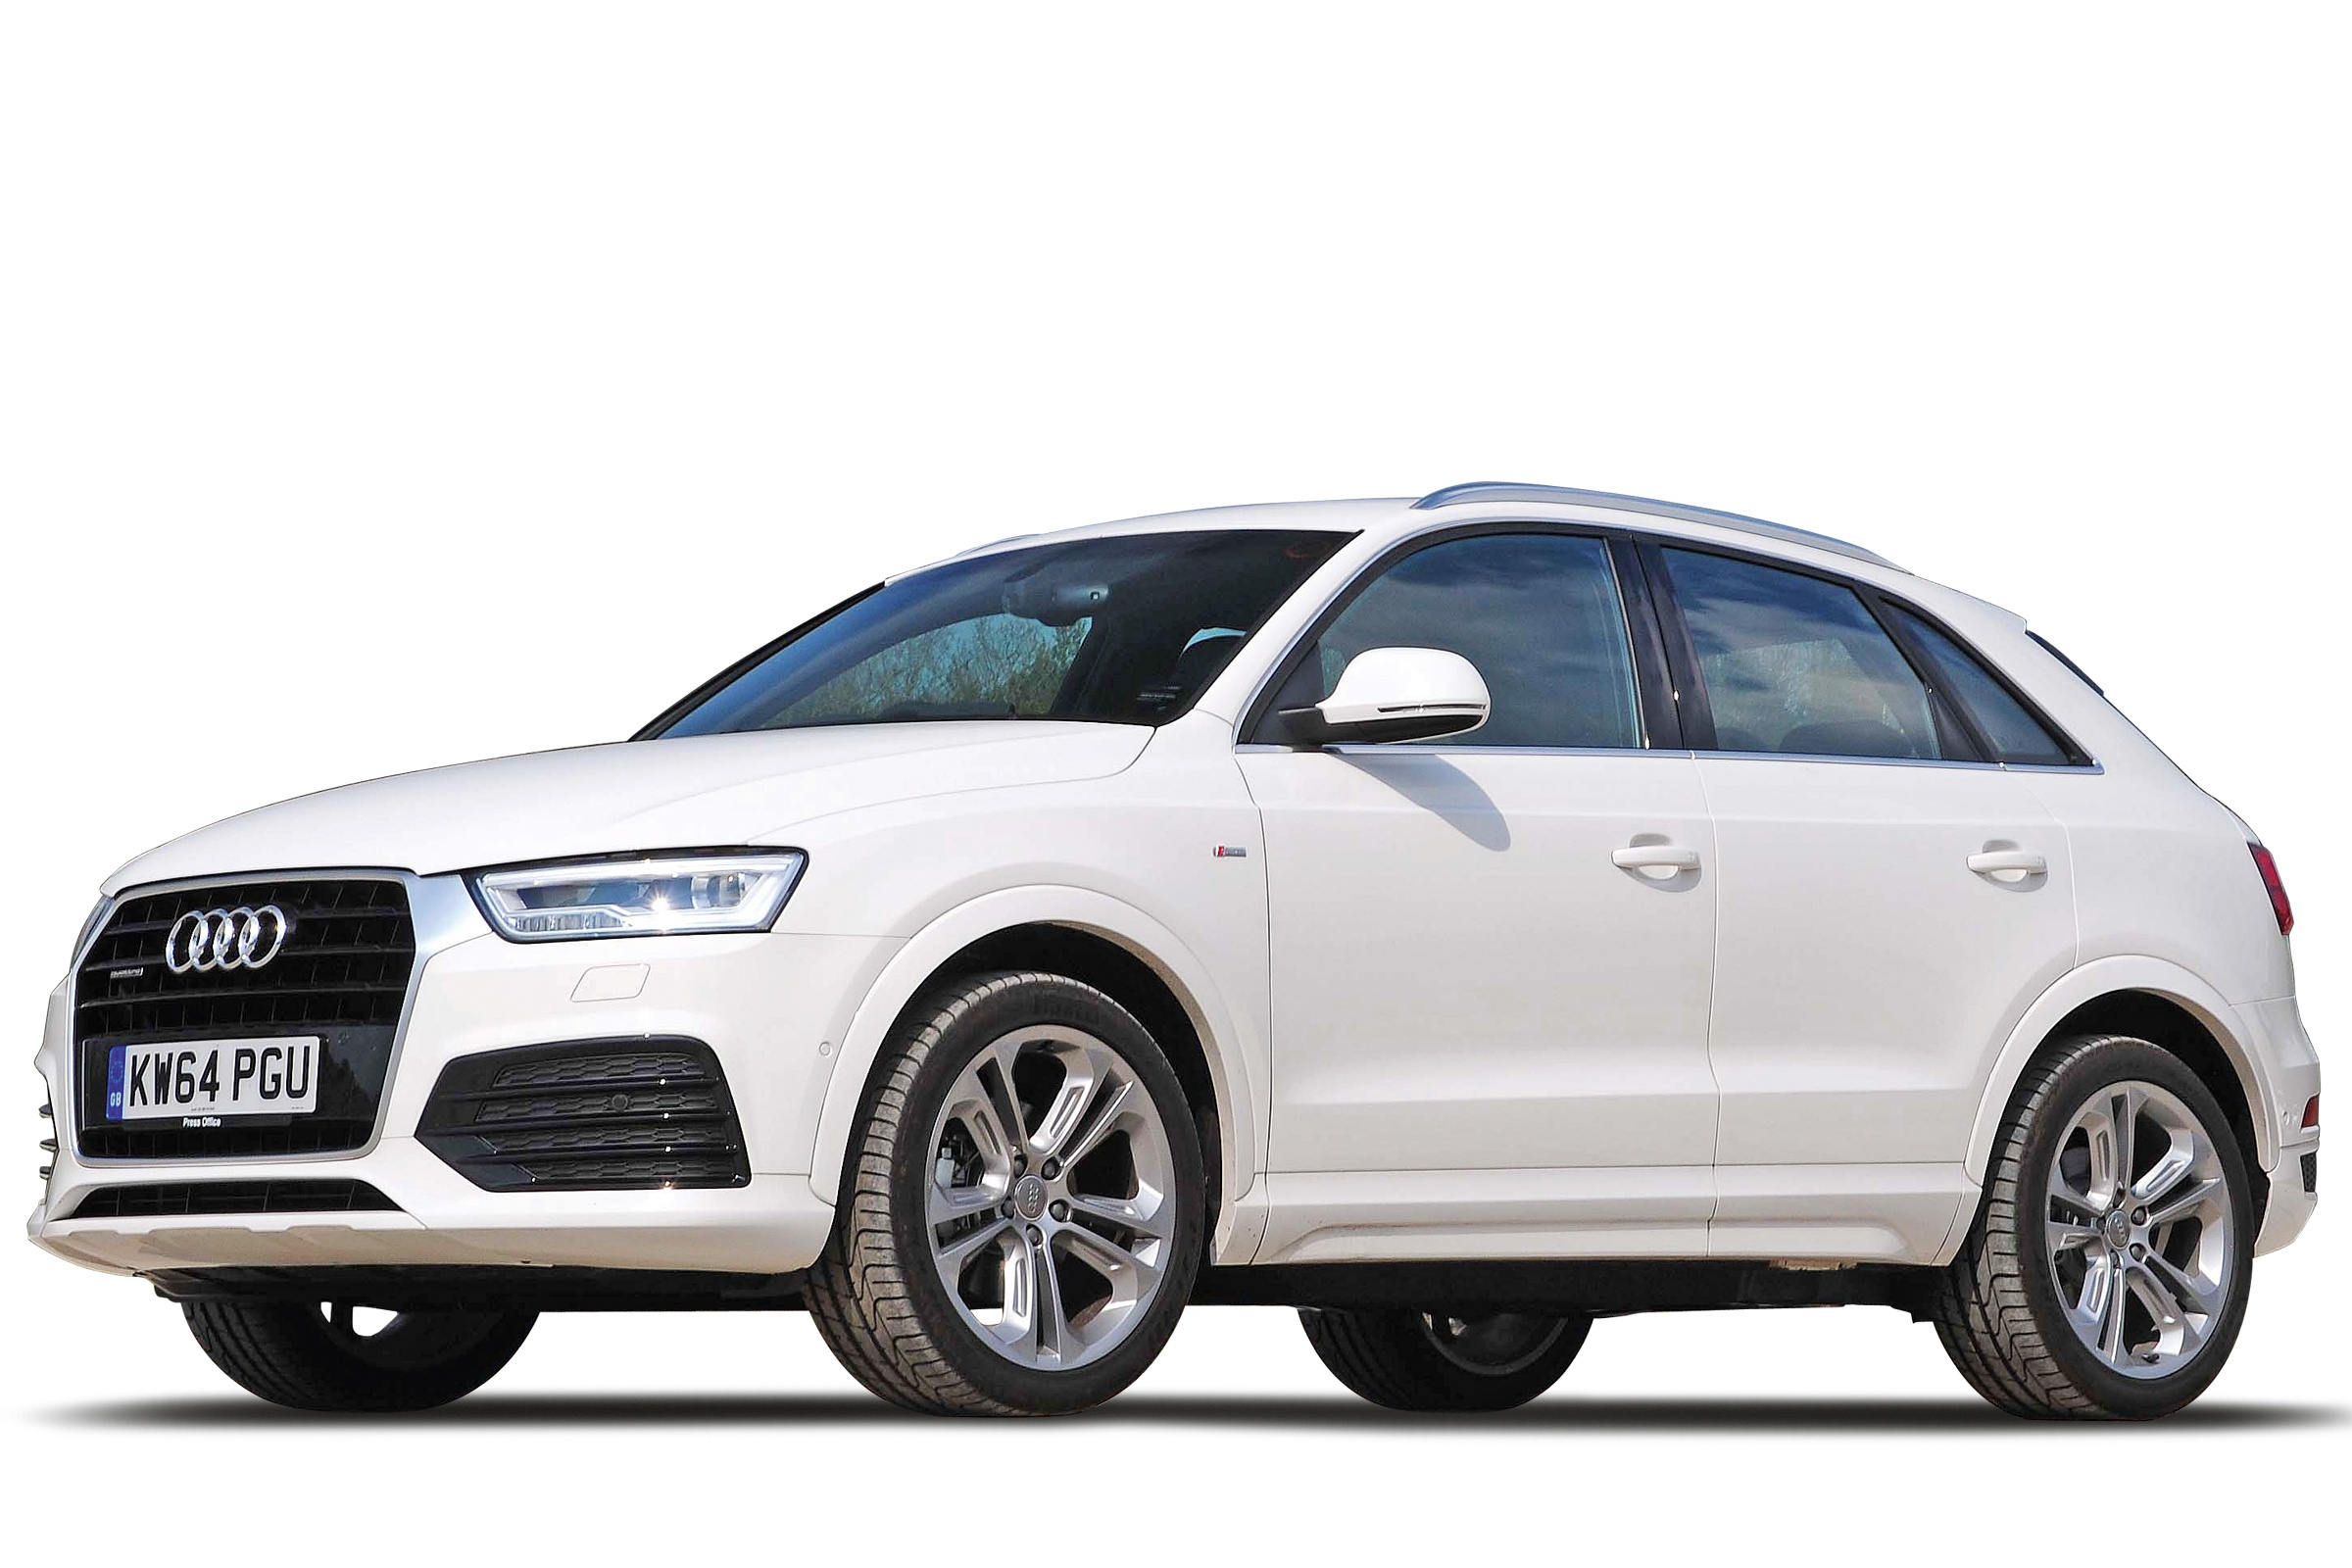 Modified Audi for Sale Uk Beautiful Audi Q3 Suv 2011 2018 Owner Reviews Mpg Problems Reliability-2447 Of Best Of Modified Audi for Sale Uk